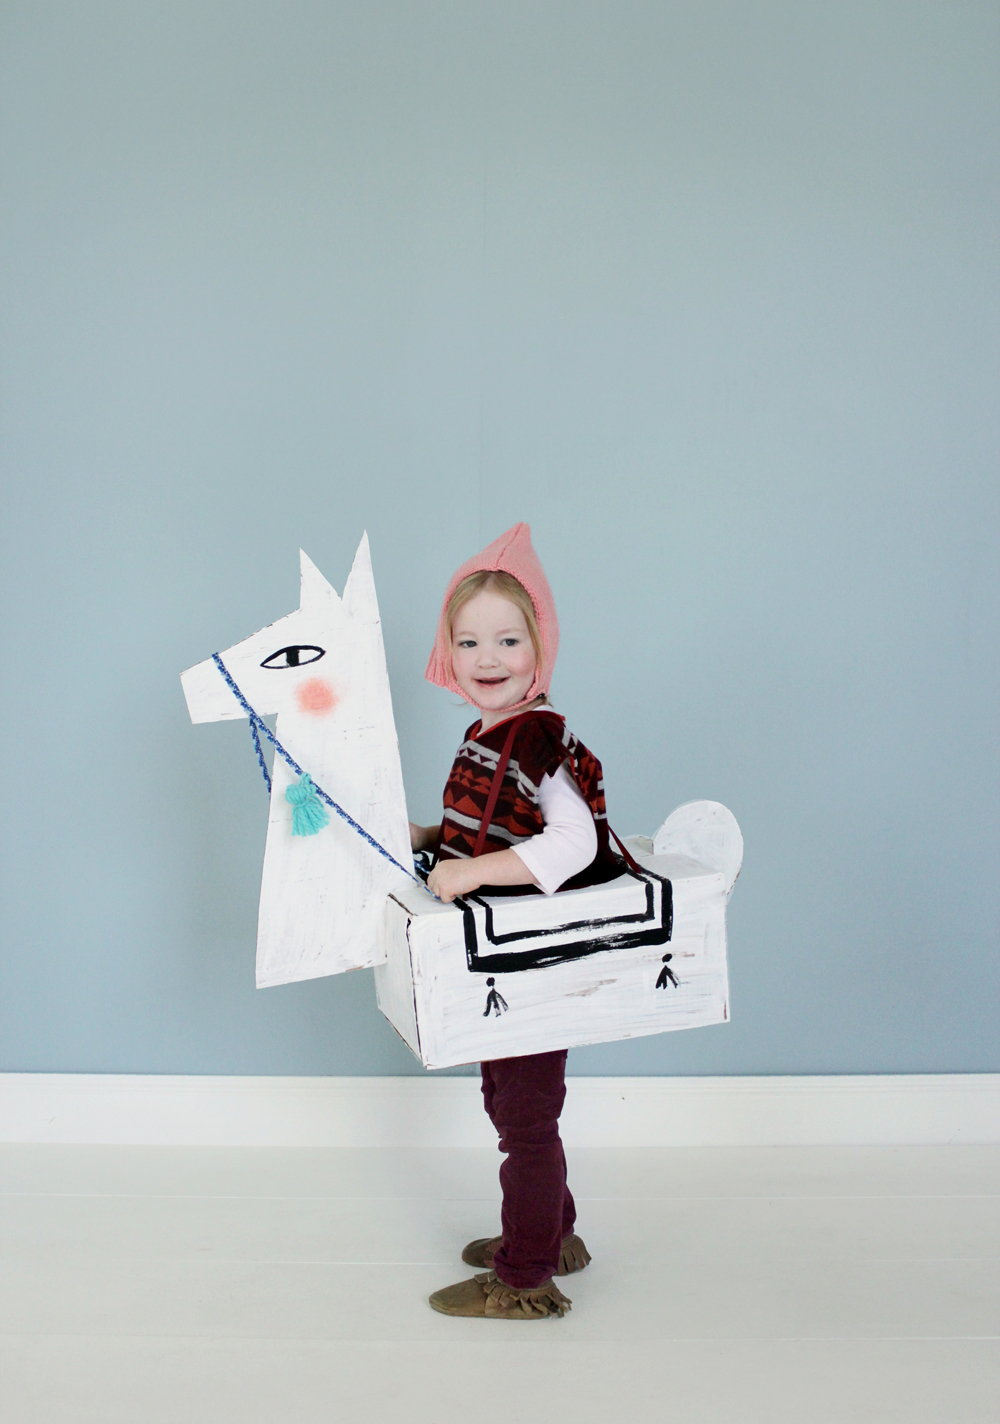 24 awesome diy halloween costume ideas 24 awesome diy halloween costumes to try this year diy cardboard llama costume solutioingenieria Image collections